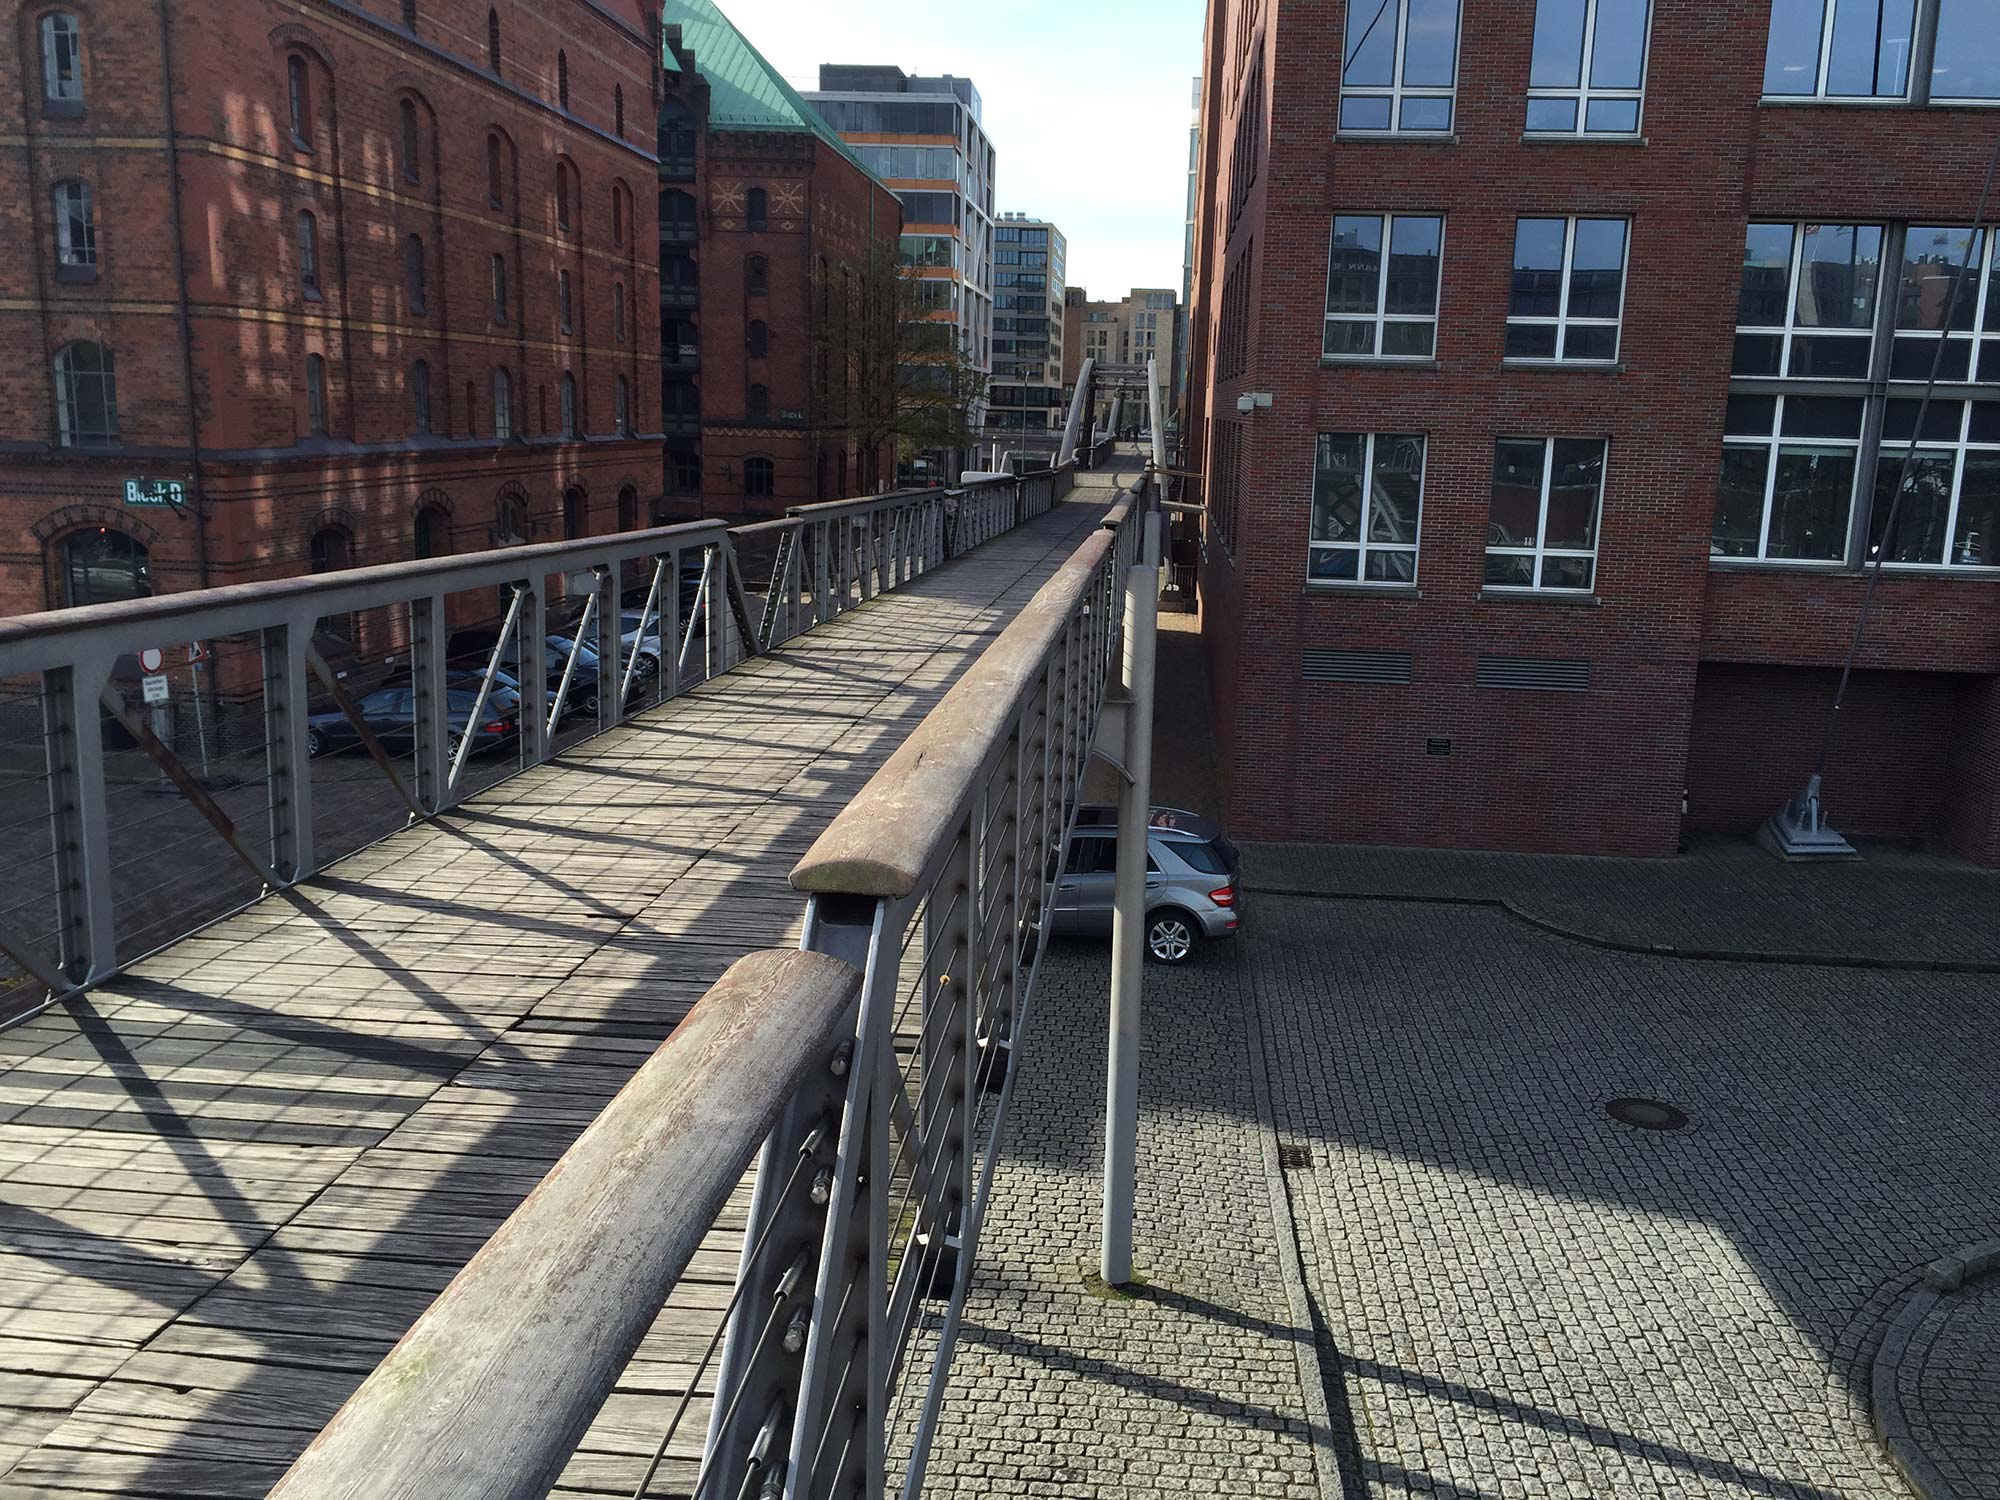 A series of elevated walkways and bridges are a new network of pedestrian access to the district's buildings during floods.